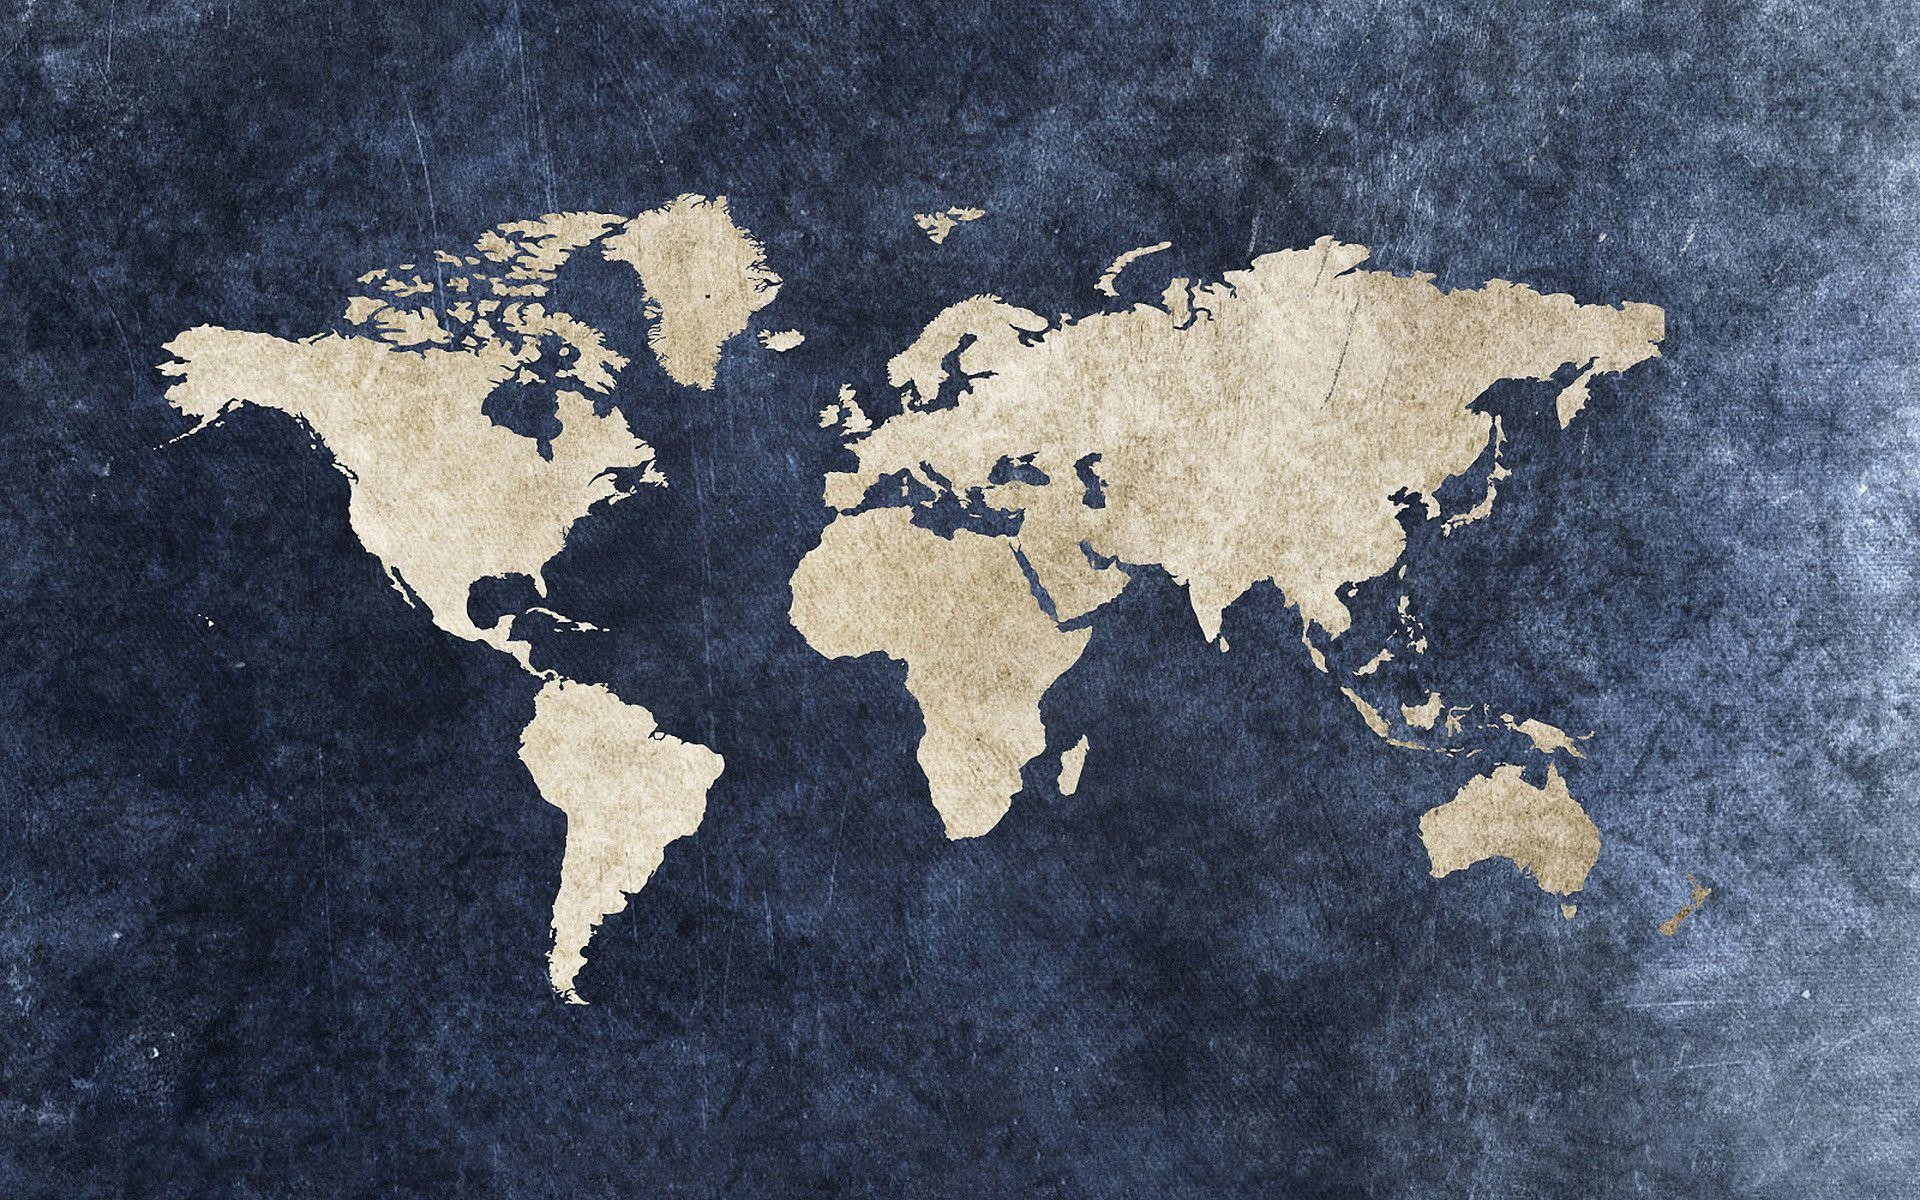 1920x1200 World Map Wallpapers - Full HD wallpaper search